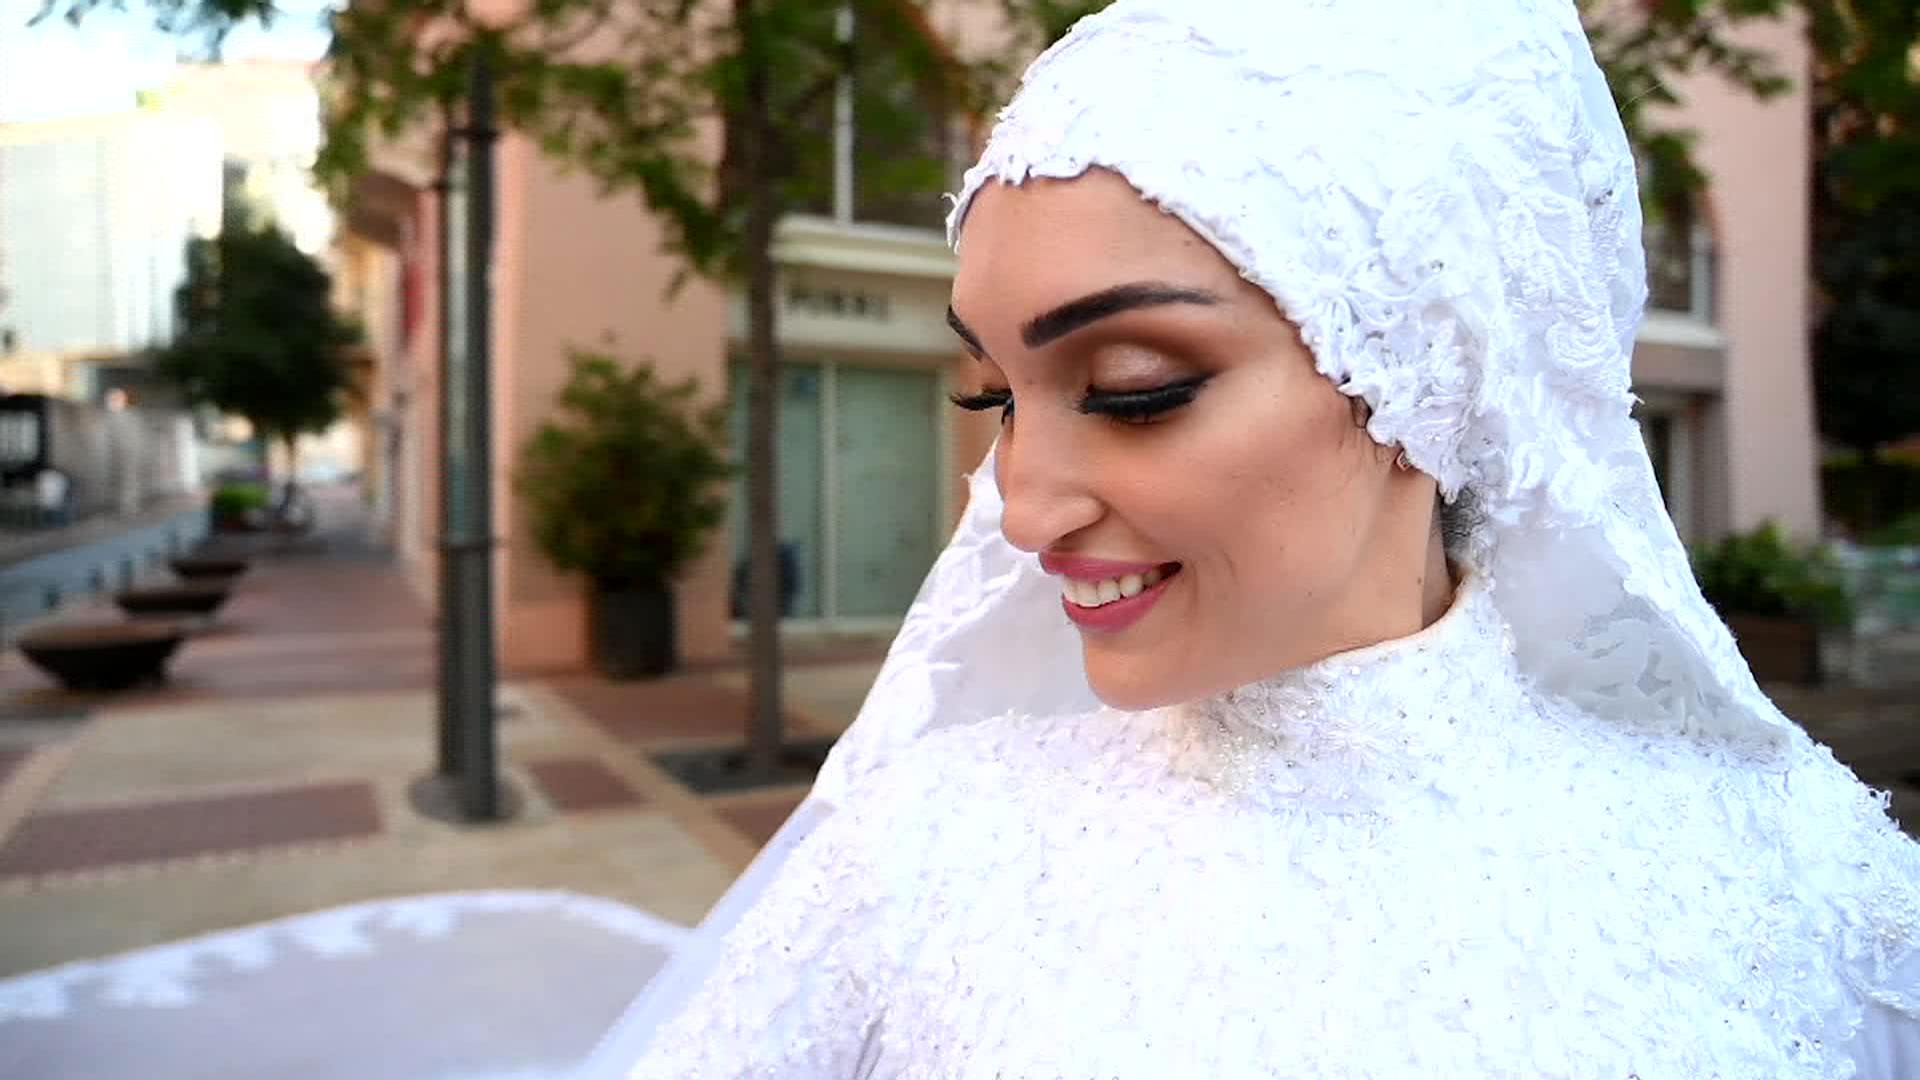 One moment, they were filming the bride in her wedding dress. Then ...